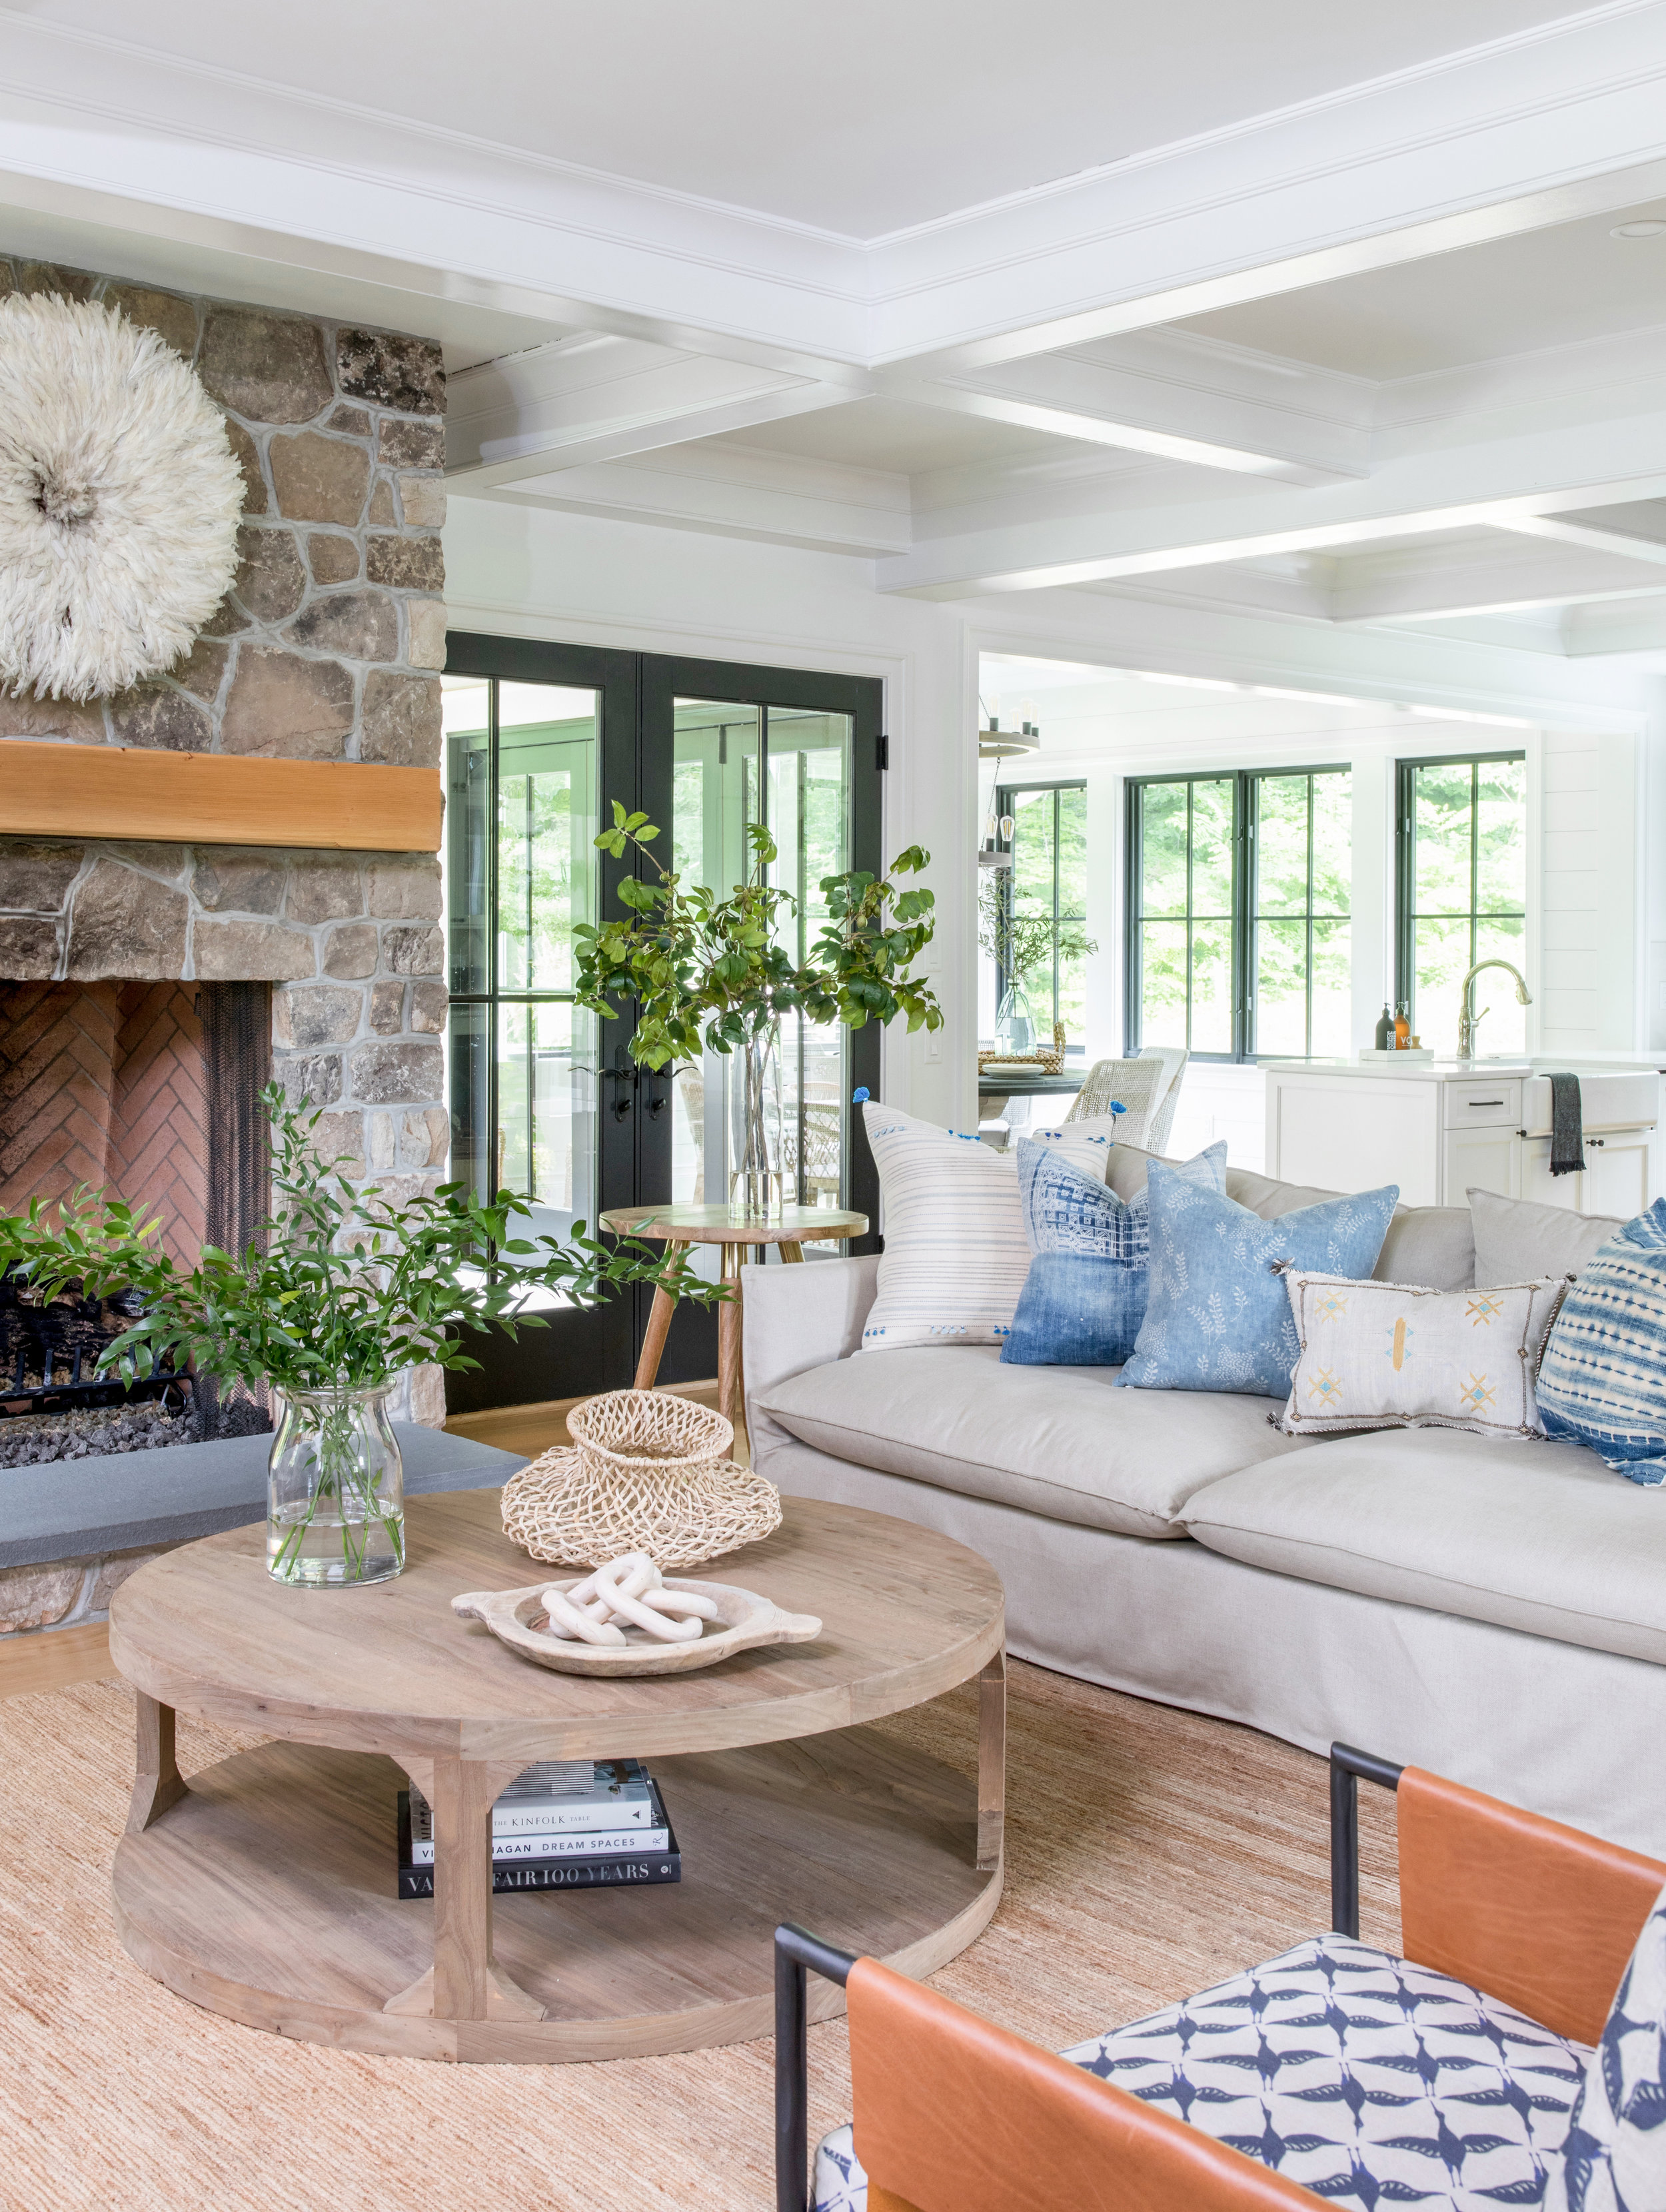 House Tour-  I Love This House's Modern Twist on Classic Traditional Style 4.jpeg